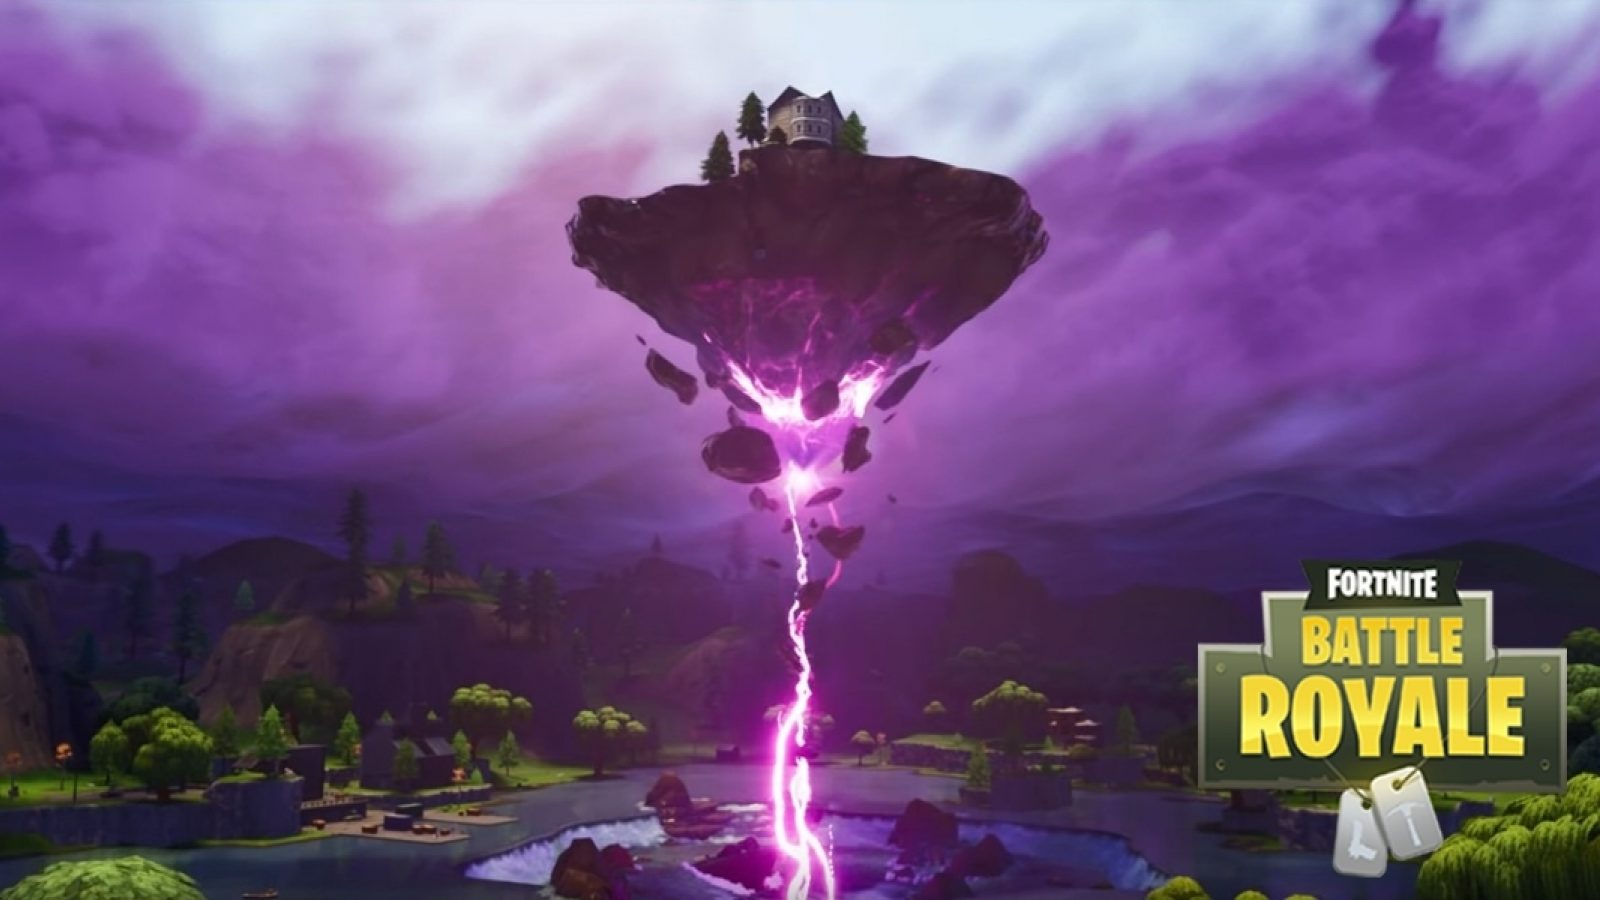 Fortnite floating island tracker Where is it going and what is it 1600x900